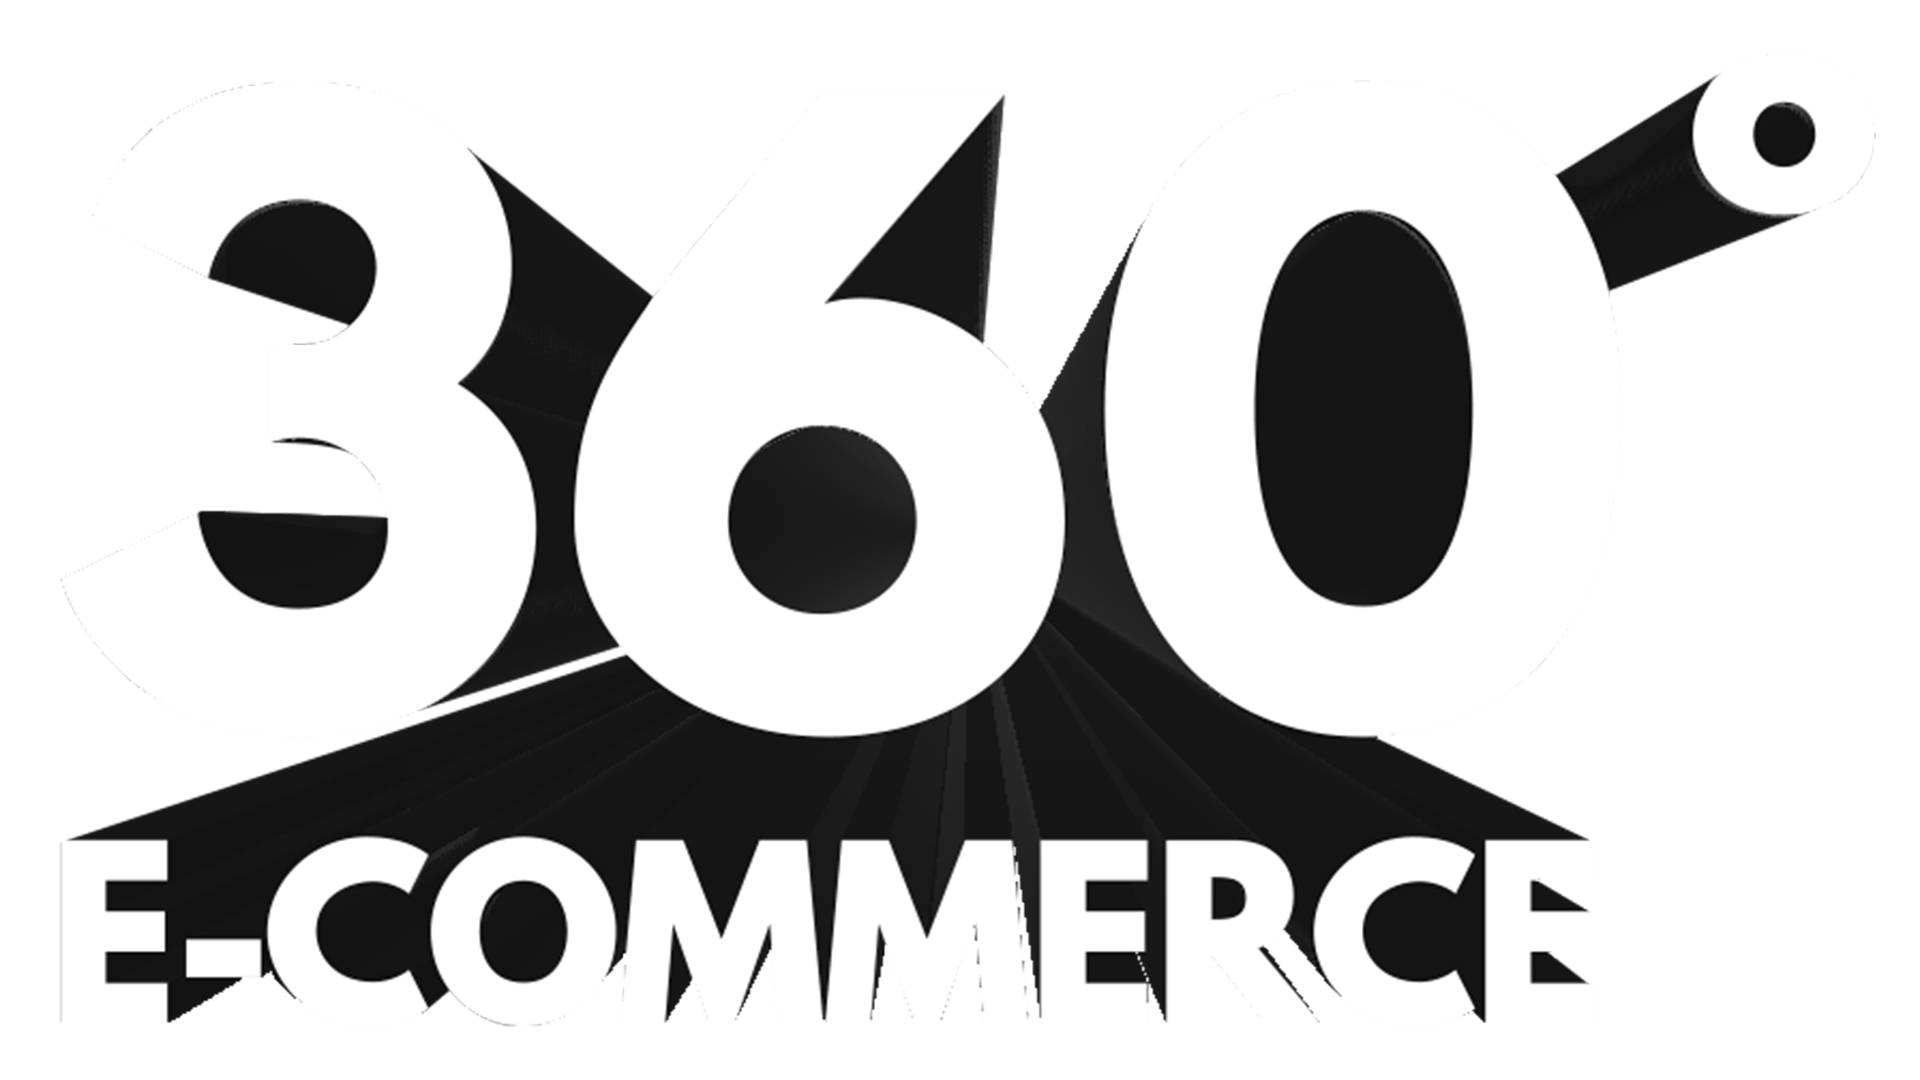 360° E-Commerce